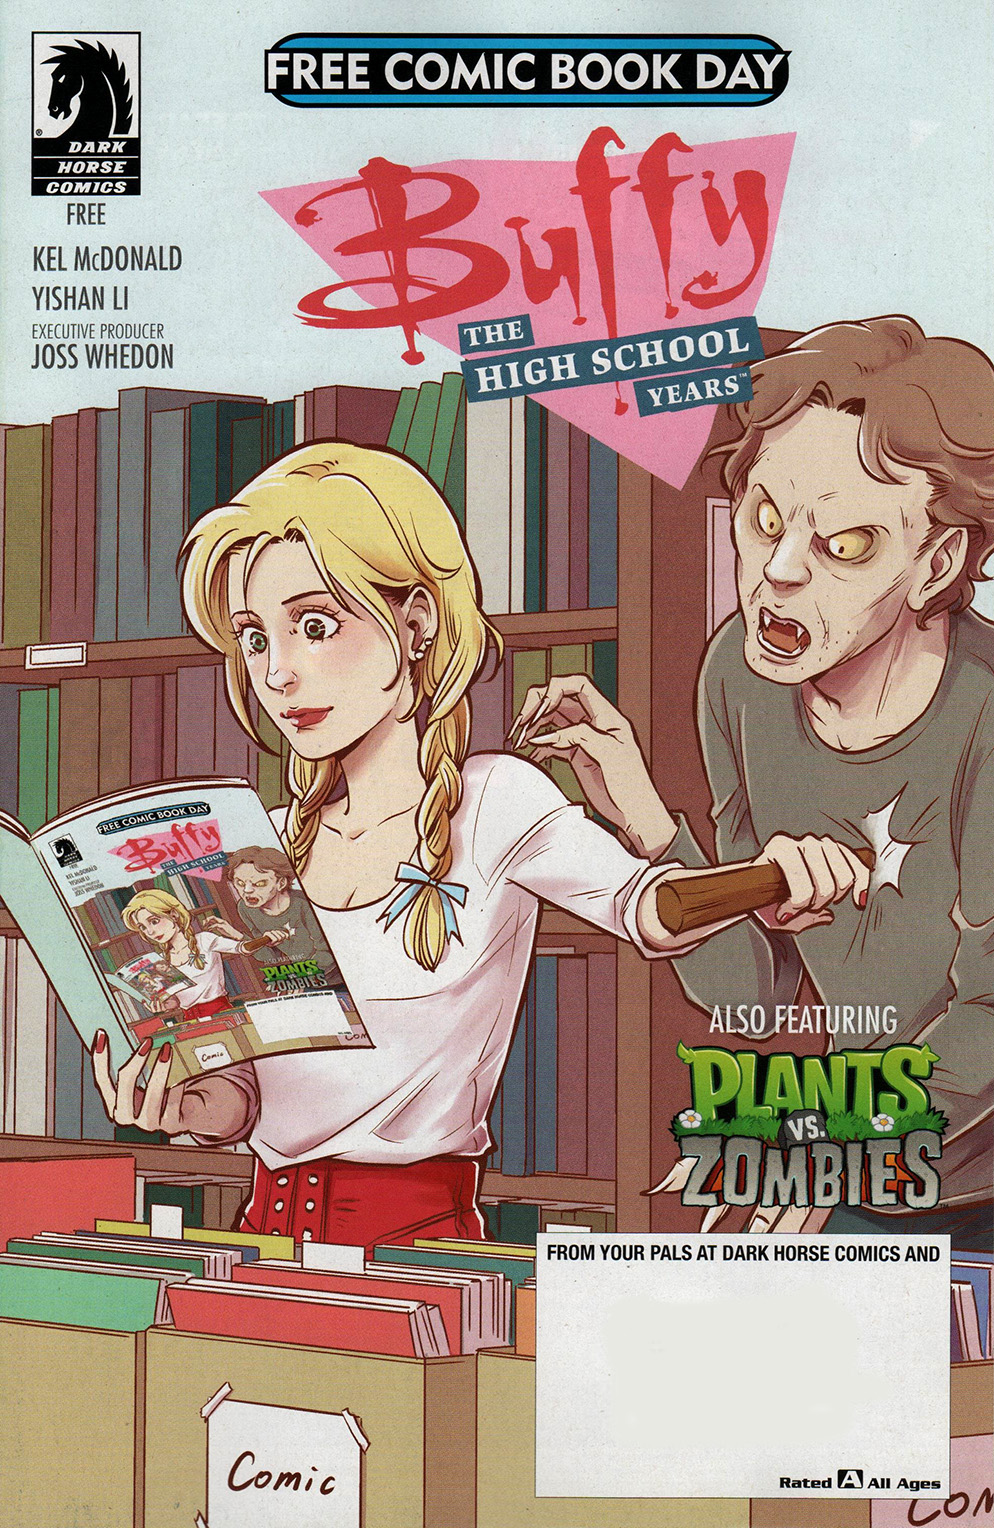 Read online Free Comic Book Day 2017 comic -  Issue # Buffy - Plants vs Zombies - 1